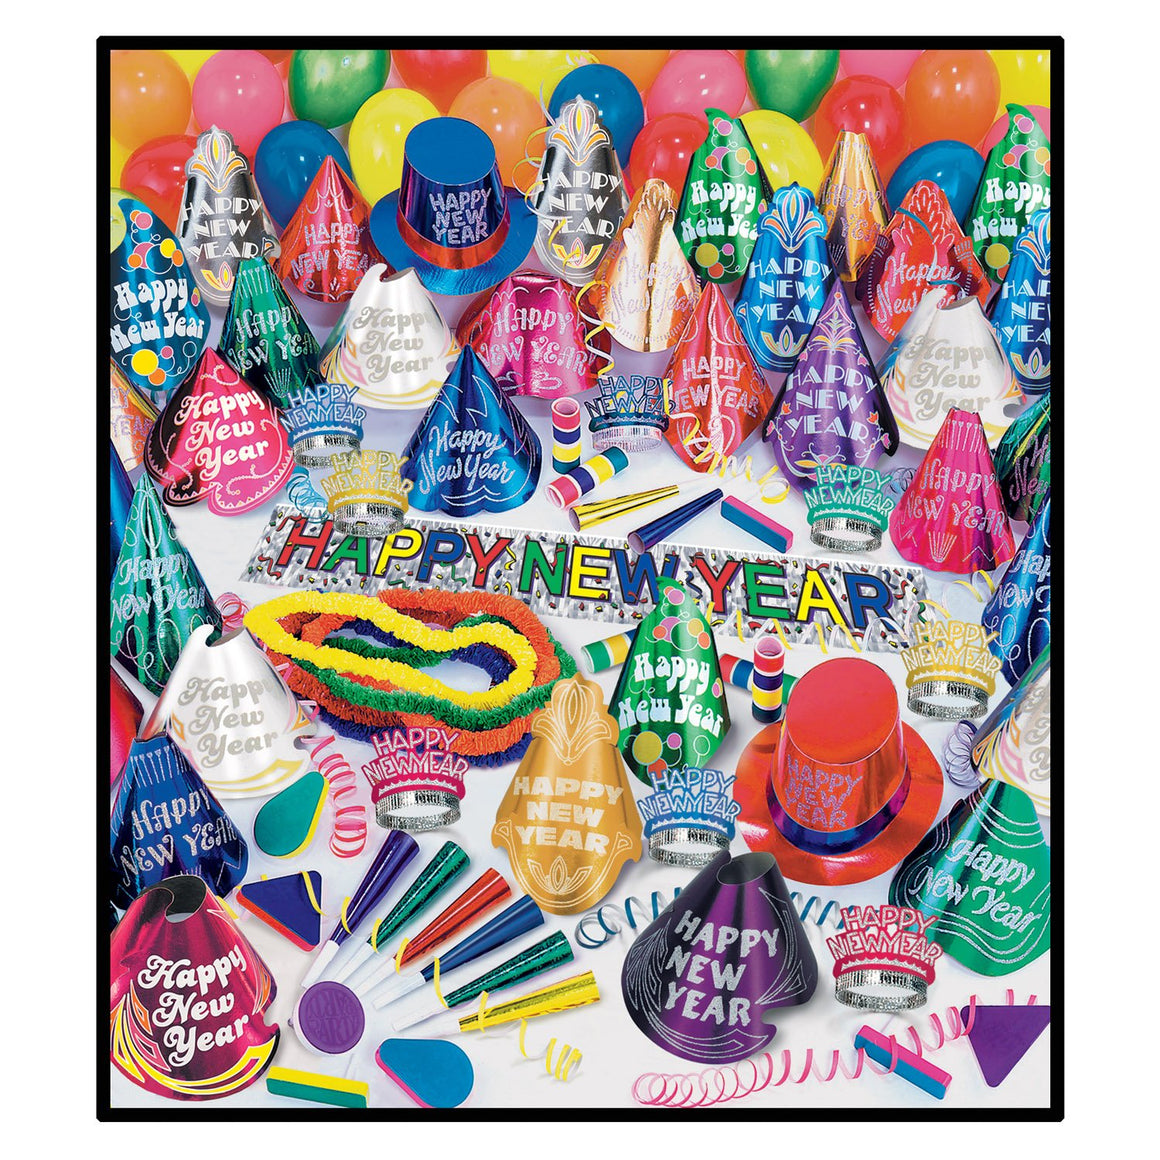 Discount 2020 New Year's Eve Party Supplies